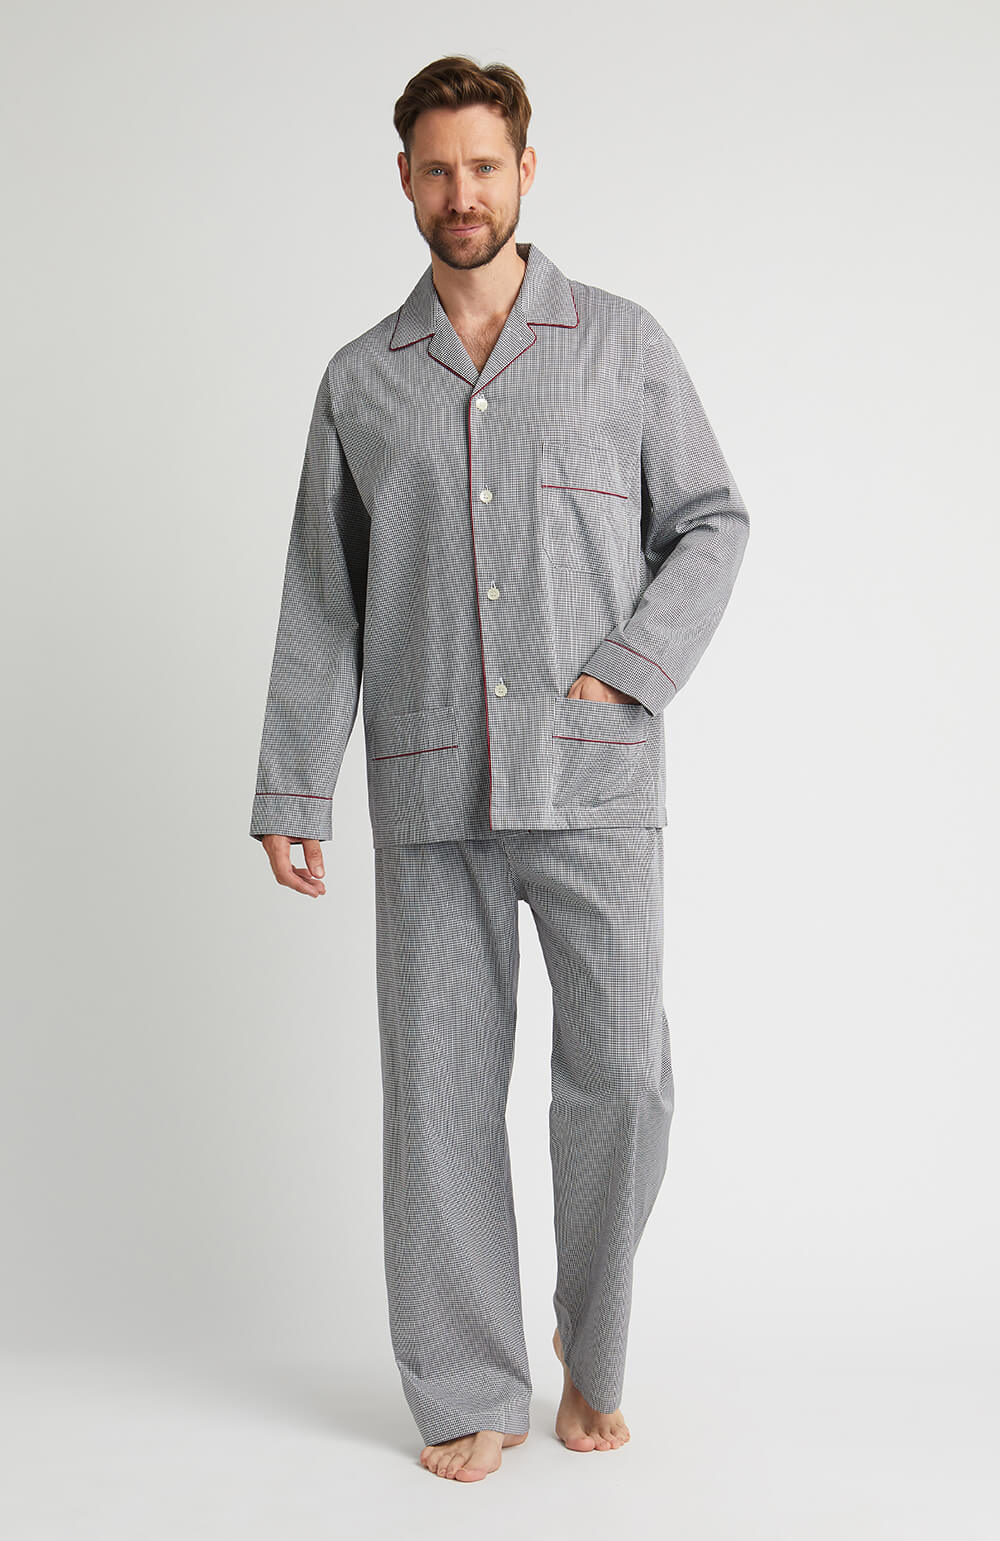 Houndstooth Pyjamas (hmpe) - Black Houndstooth